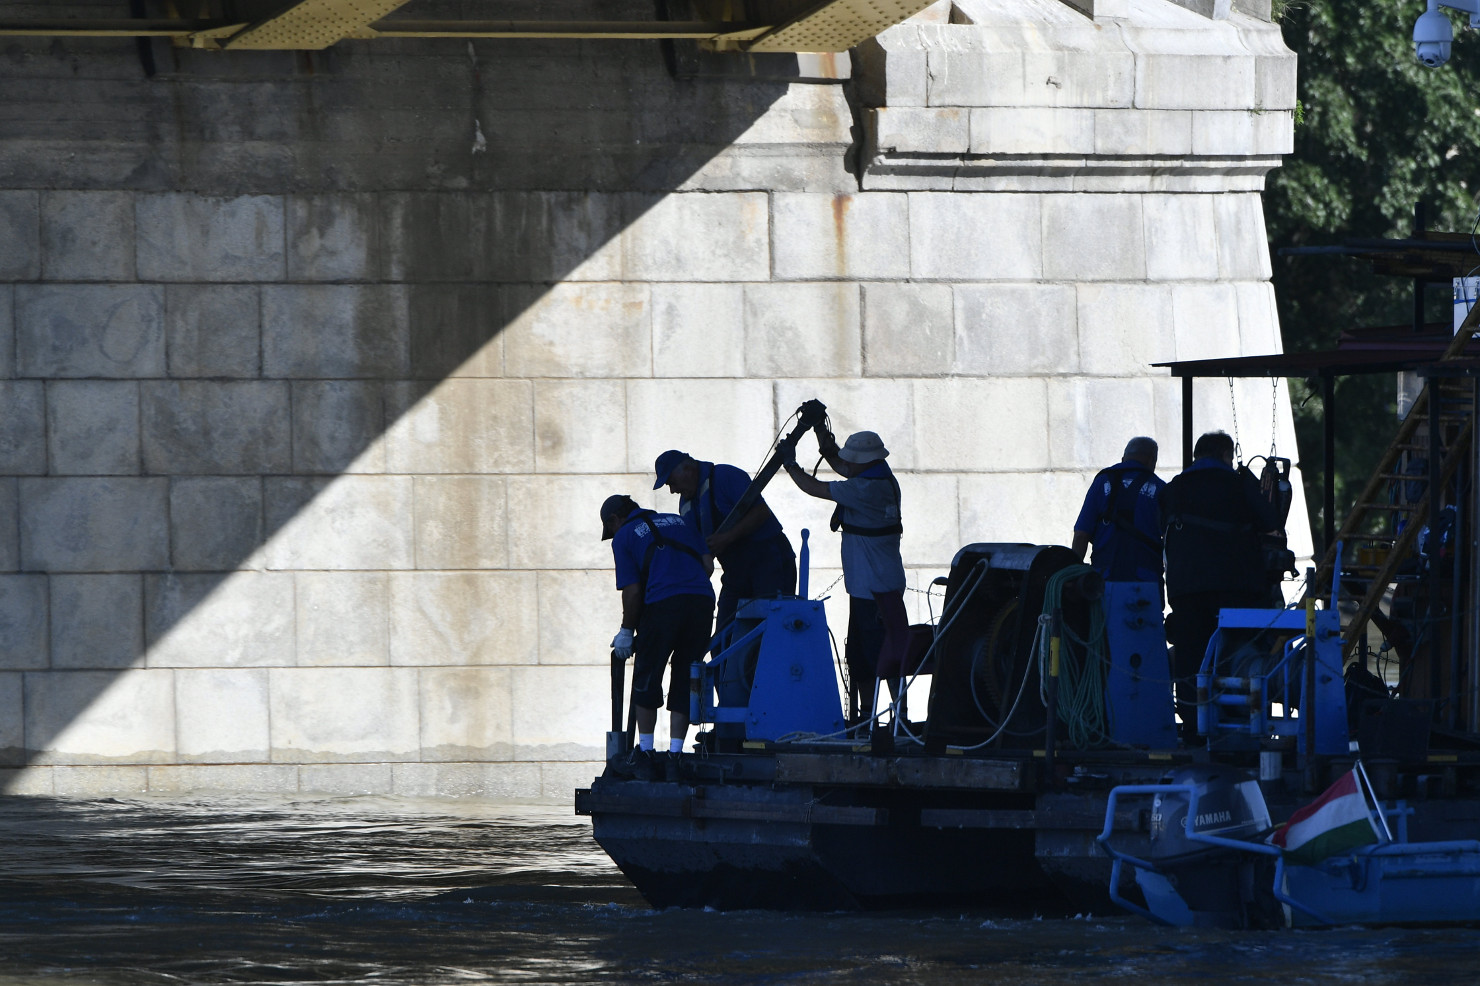 Hungarian Opinion: Deadly Boat Accident In Budapest